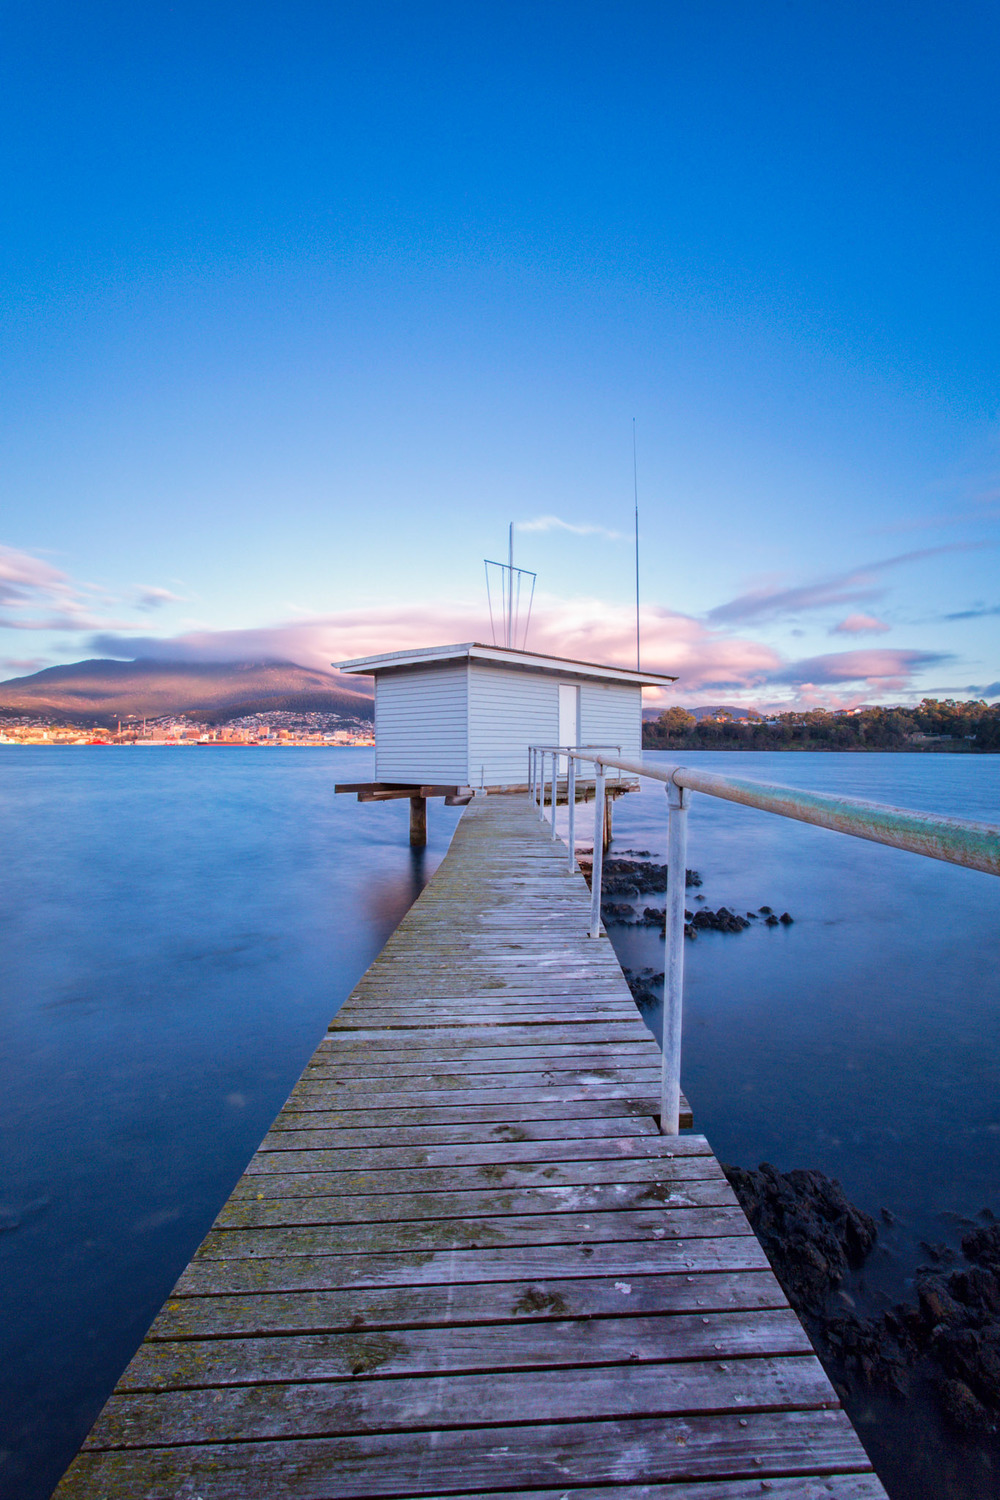 Bellerive Jetty - 15sec @ f11 - ISO100